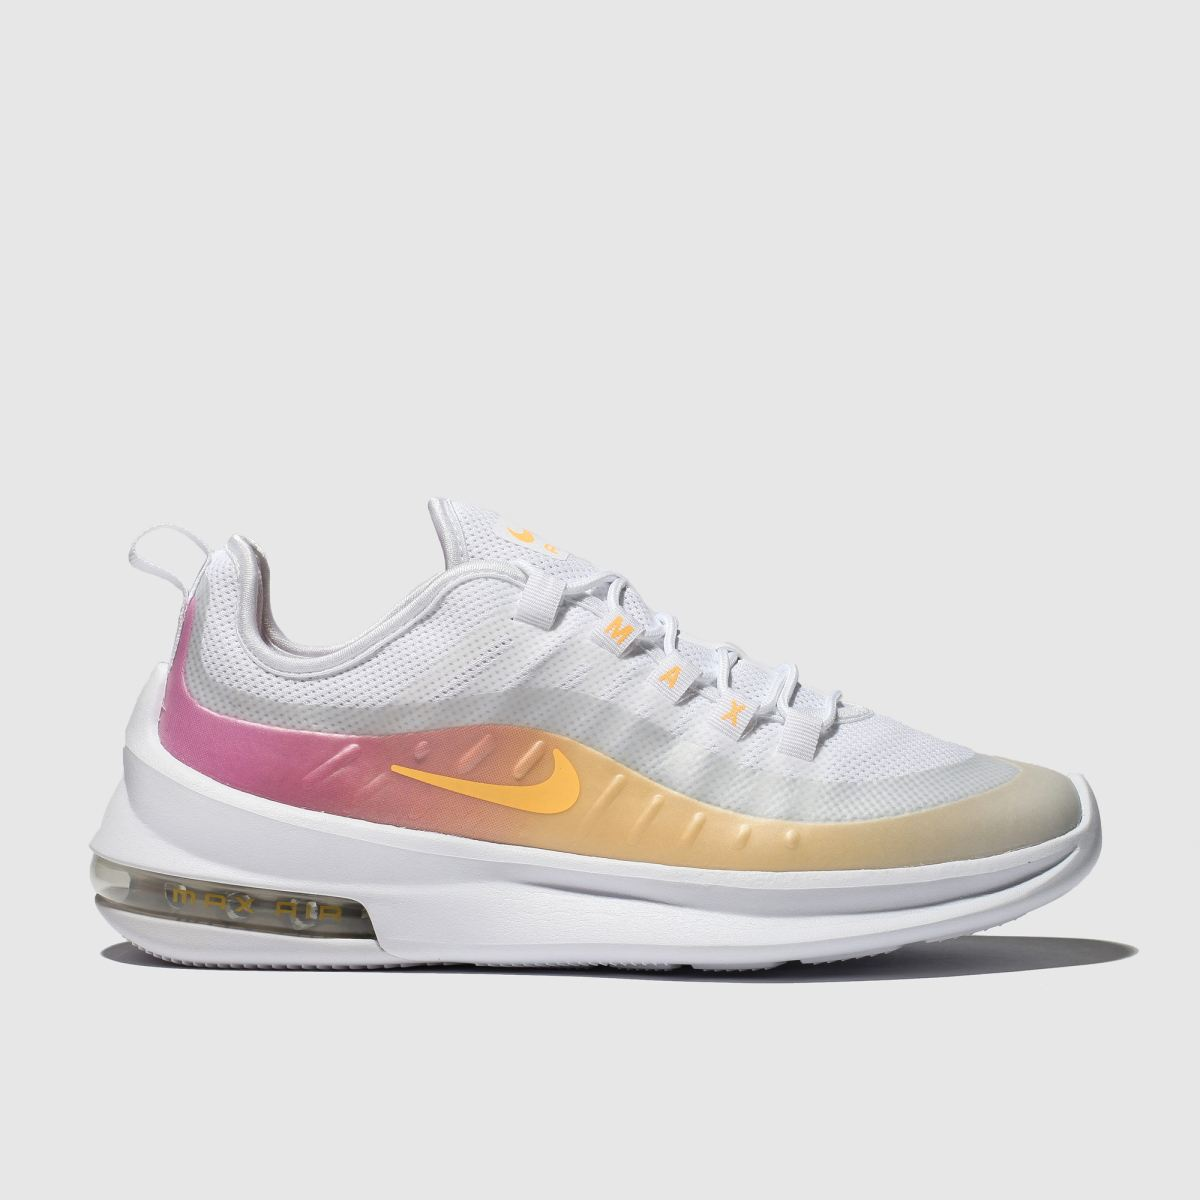 Nike Nike White & Pink Air Max Axis Premium Trainers